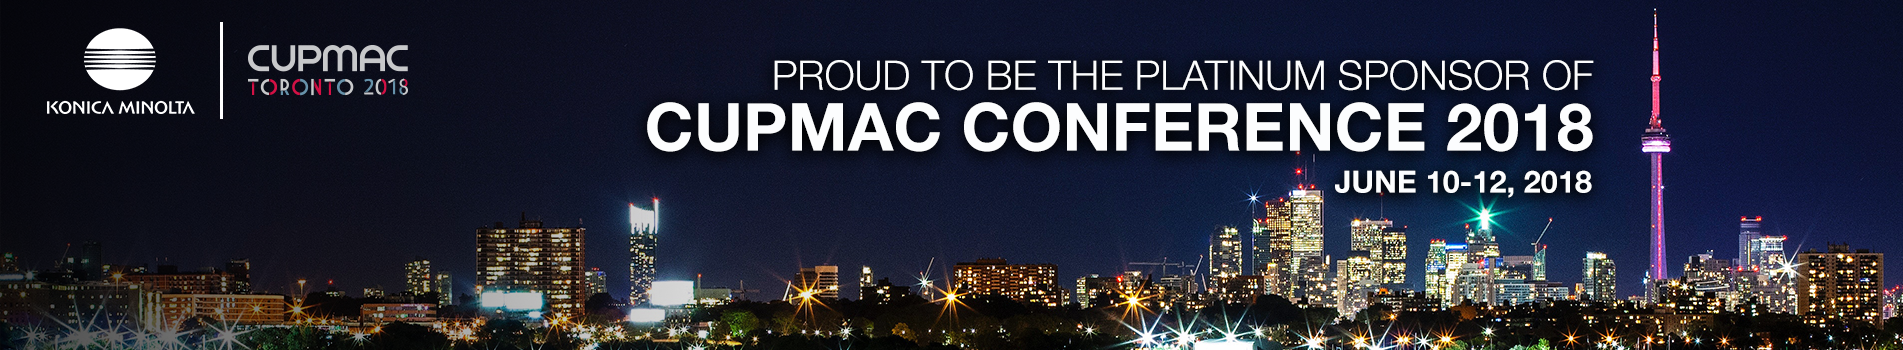 Proud to be the platinum sponsor of CUPMAC Conference 2018. June 10-12, 2018